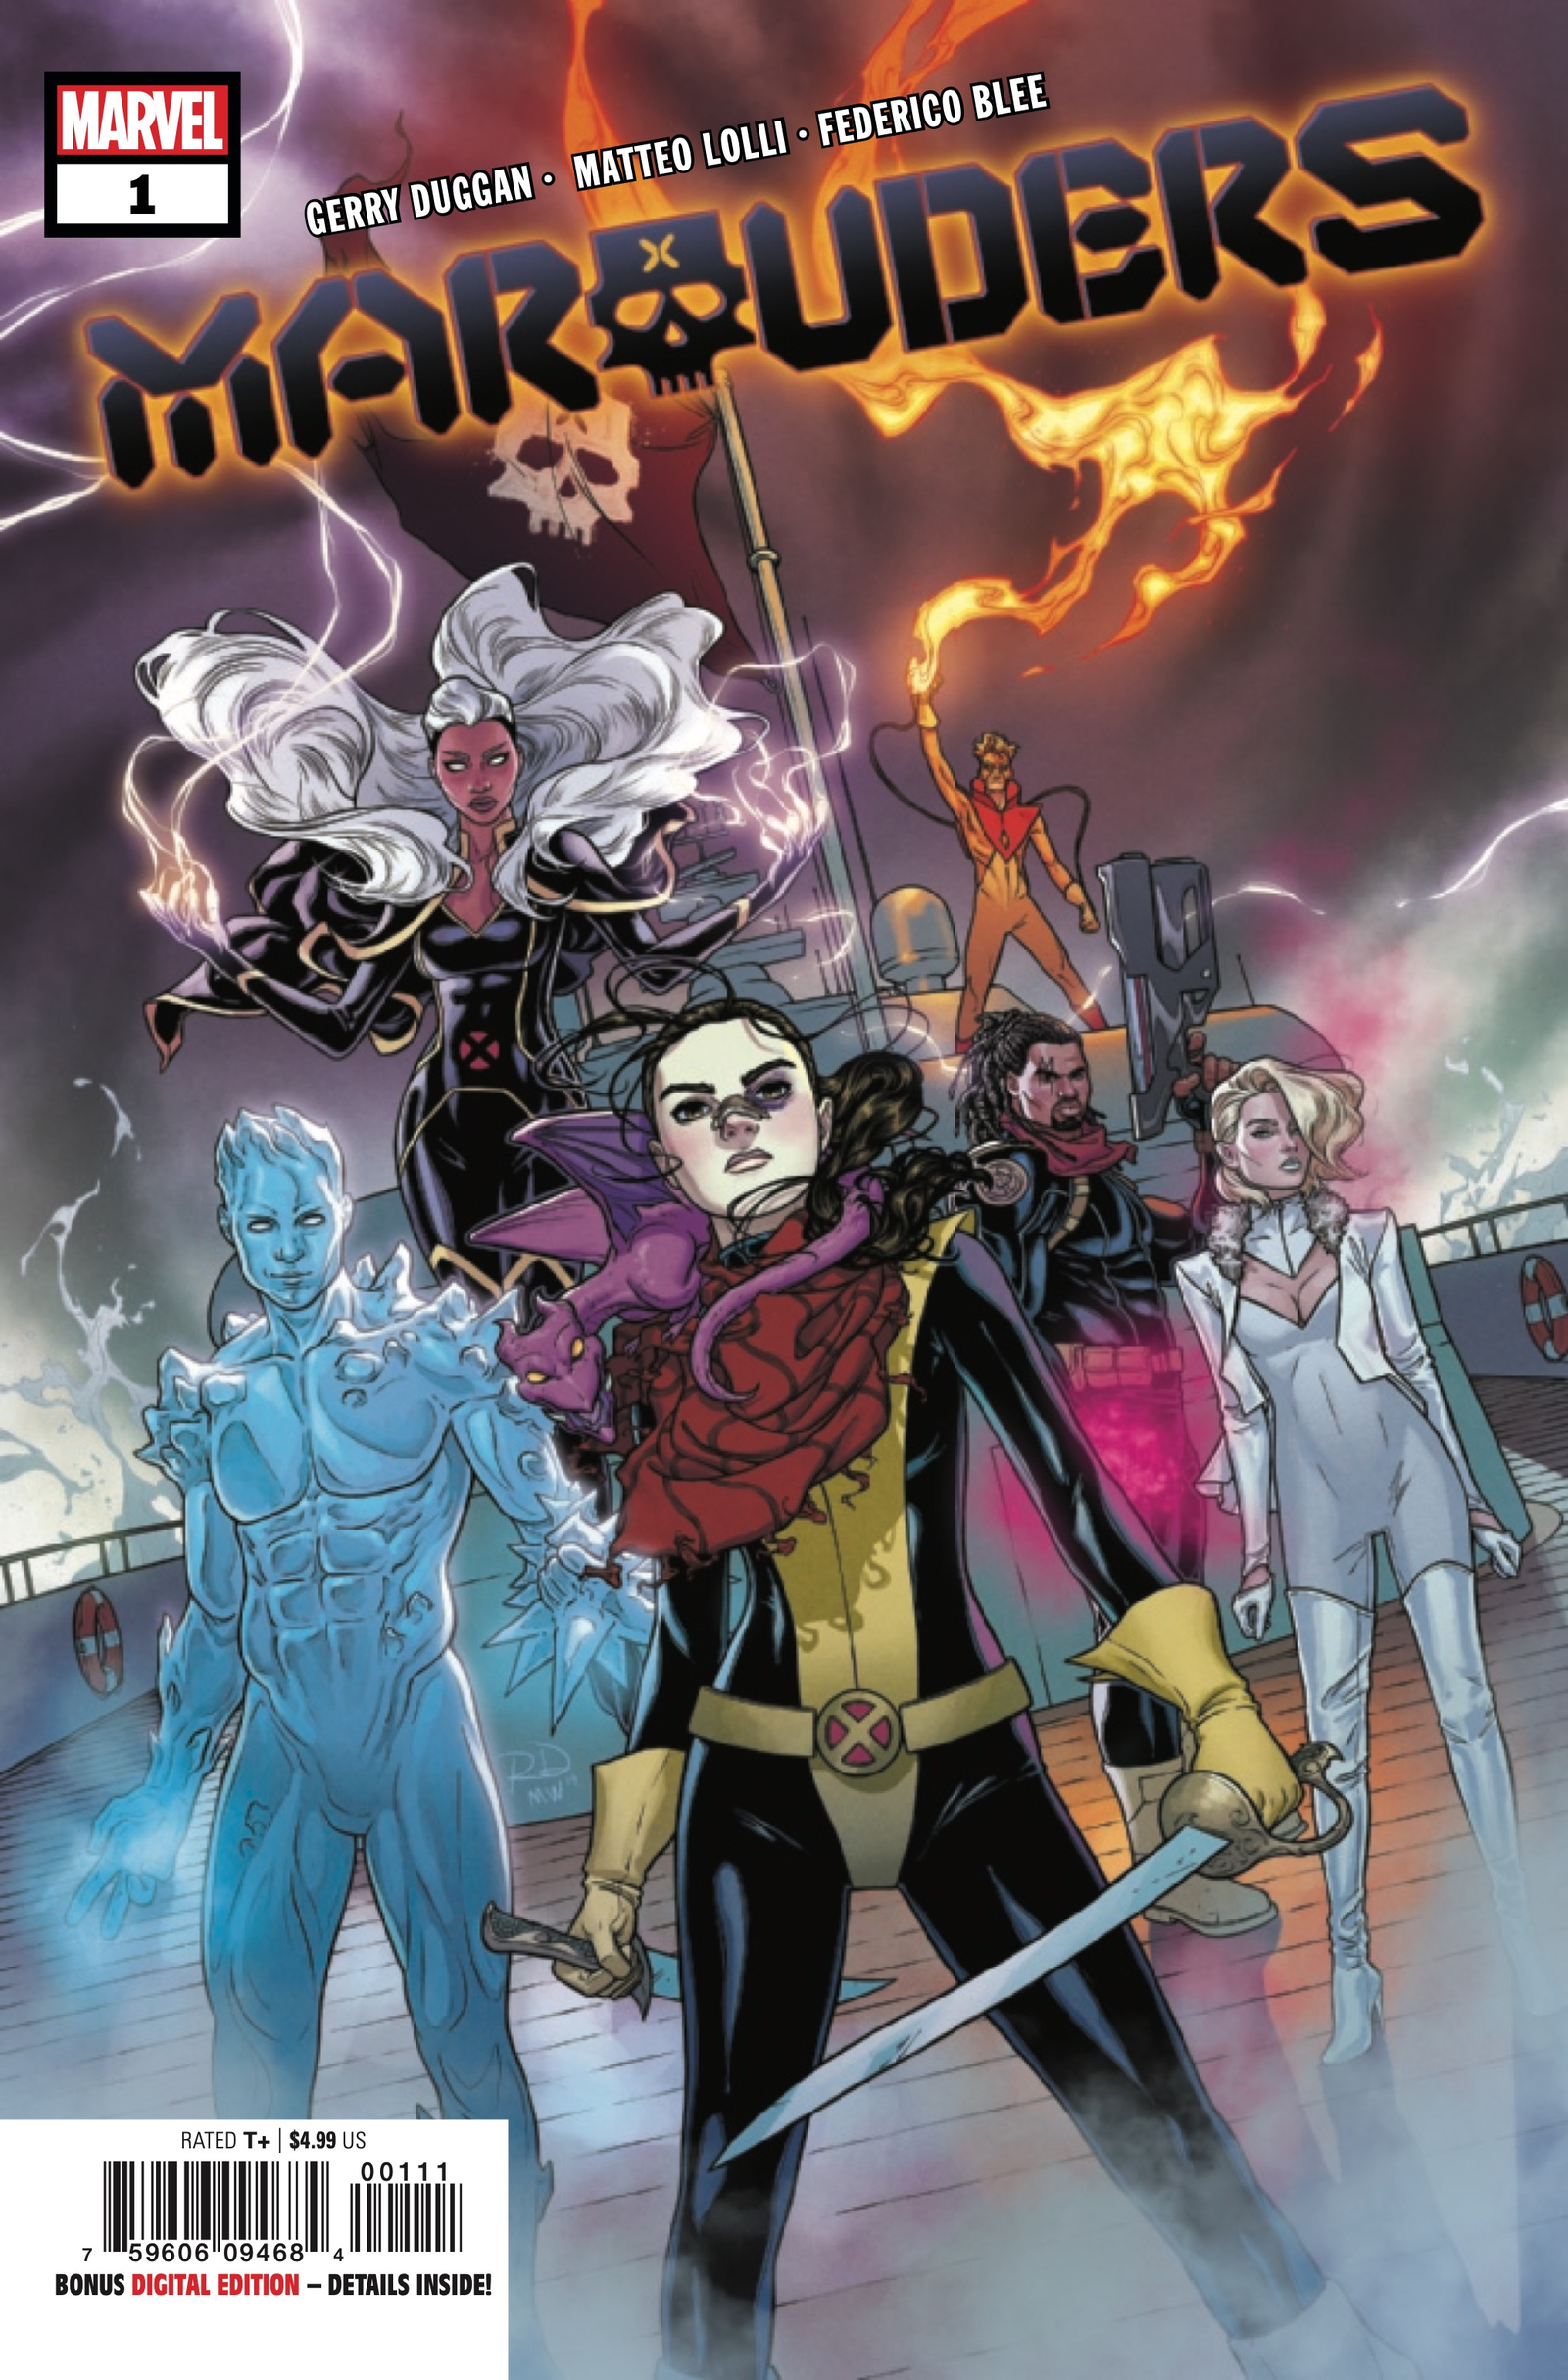 Cover by Russell Dauterman and Matthew Wilson